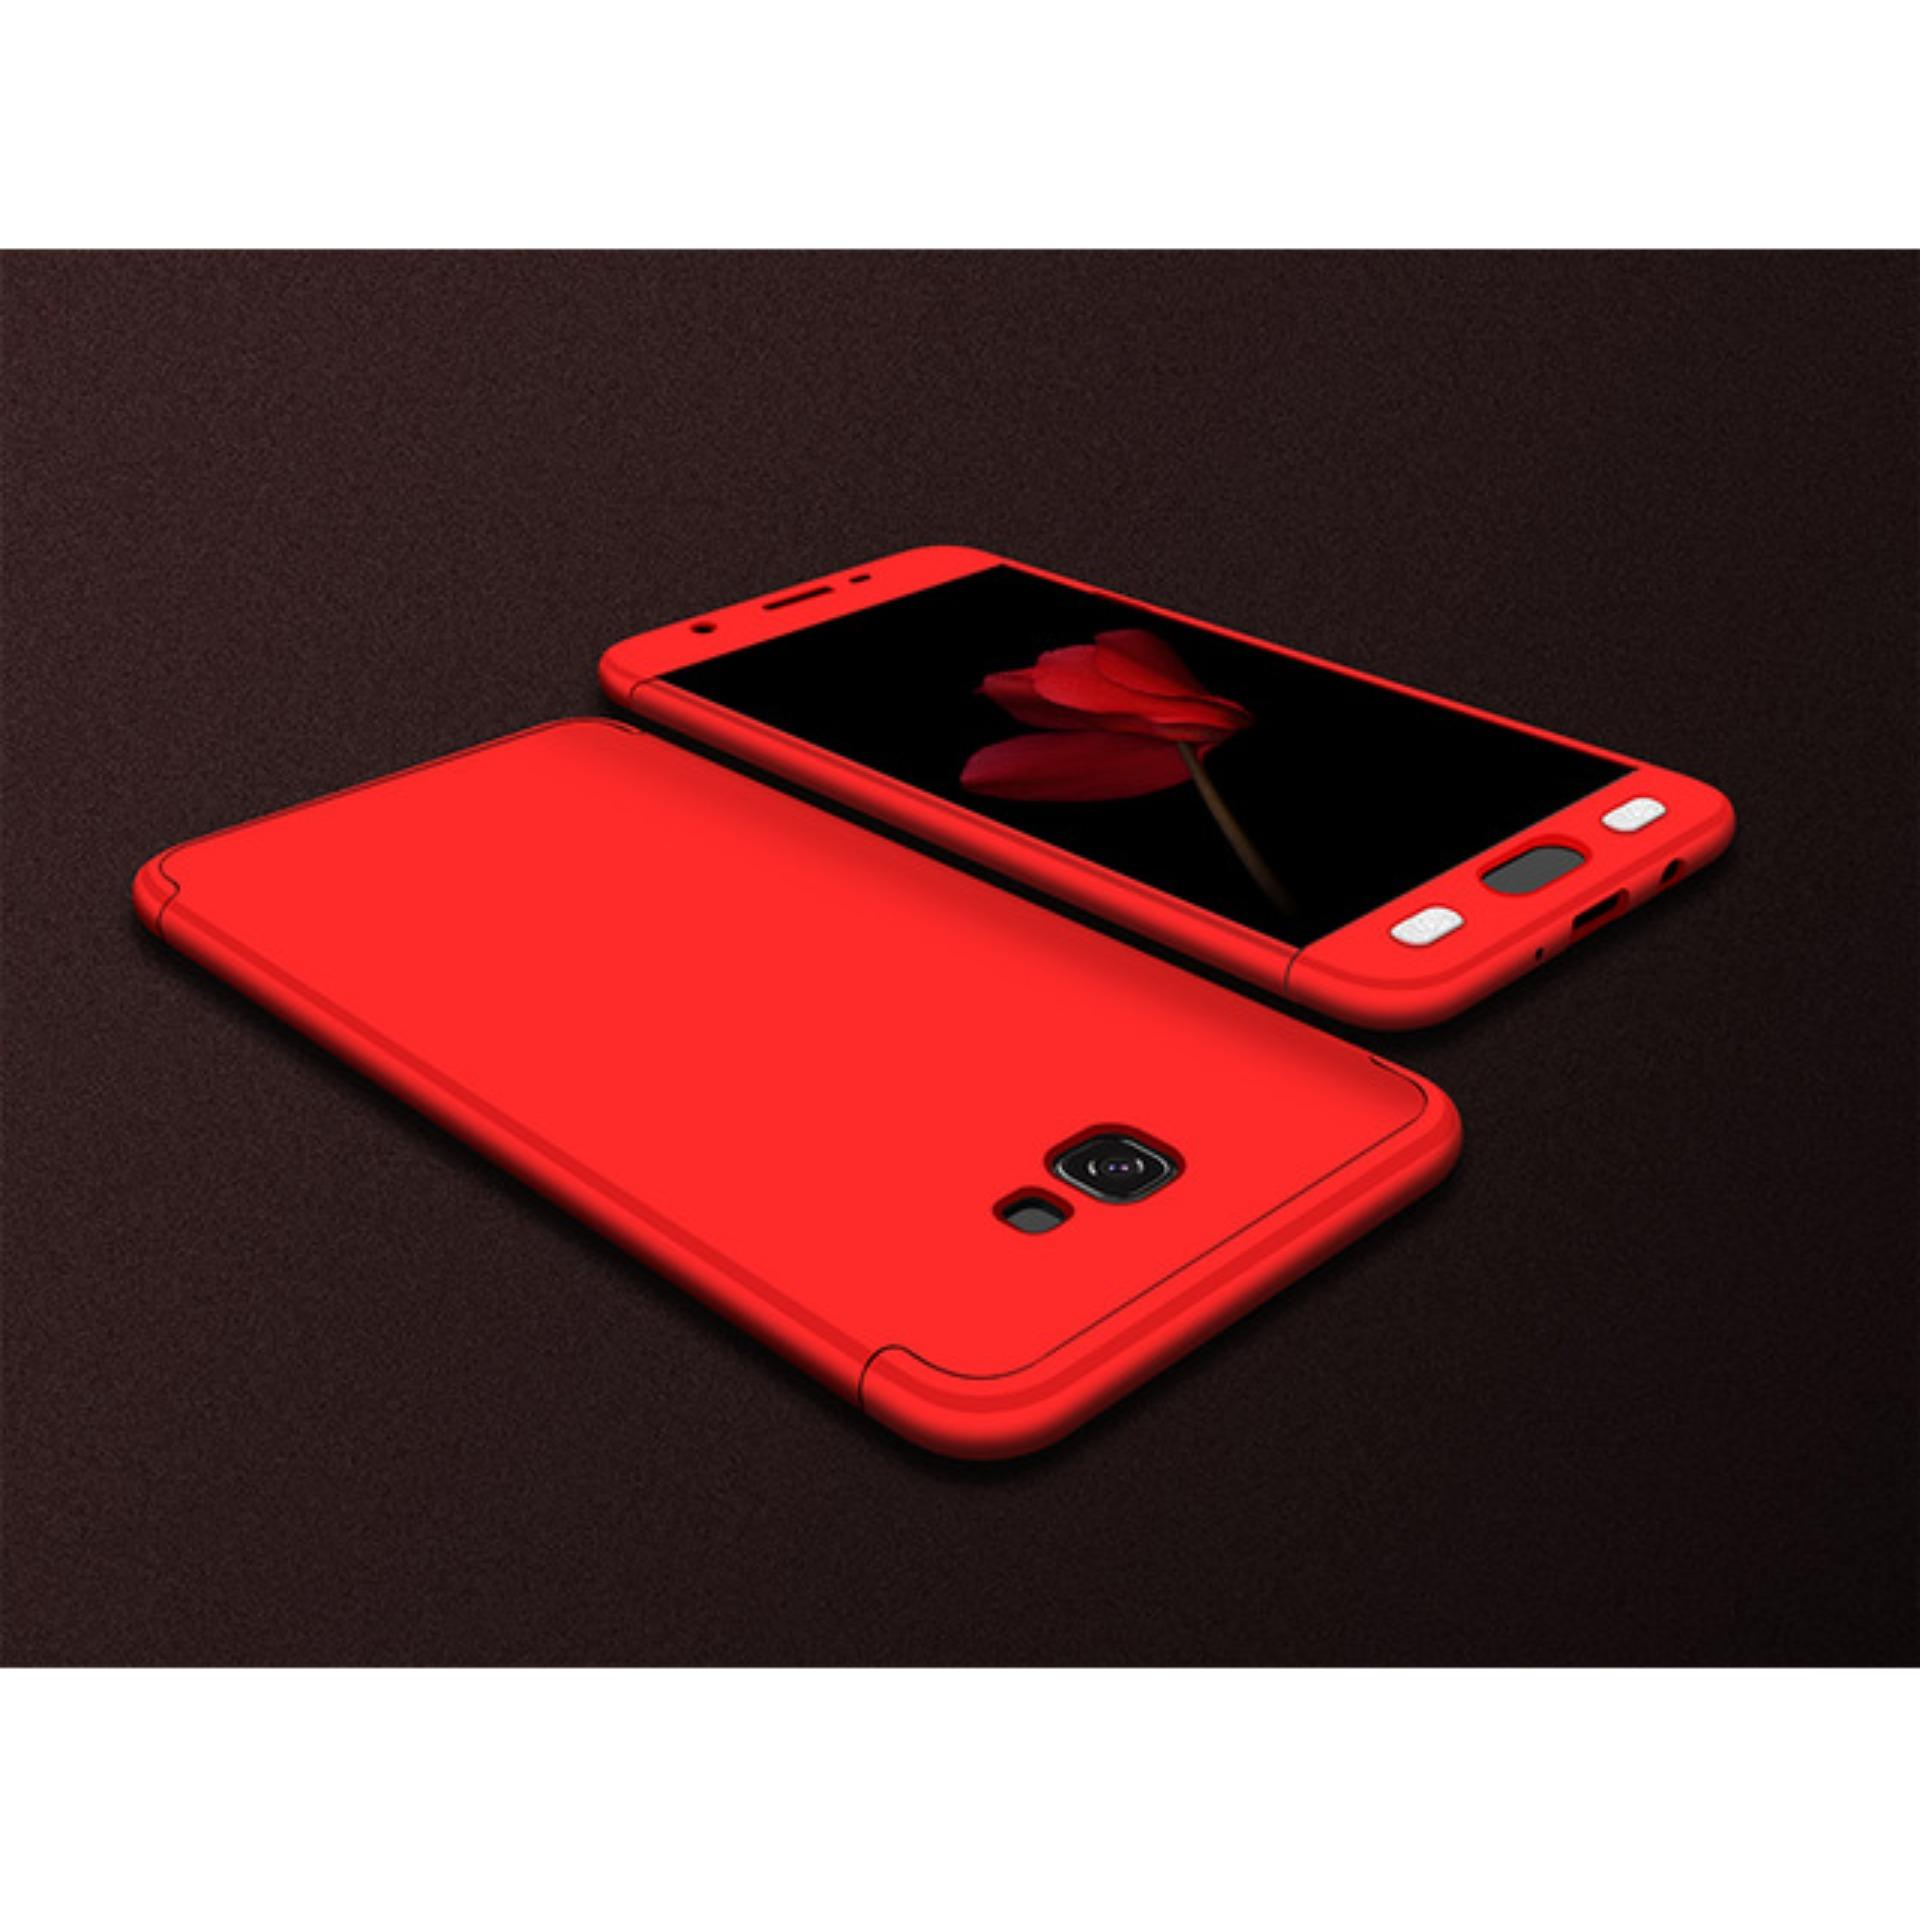 Floveme Buy At Best Price In Pakistan Tempered Glass Oppo F3 3d Full Cover White Premium Pro 360 Degree Phone Case For Samsung C9 Shockproof Protection Mobile Back Red